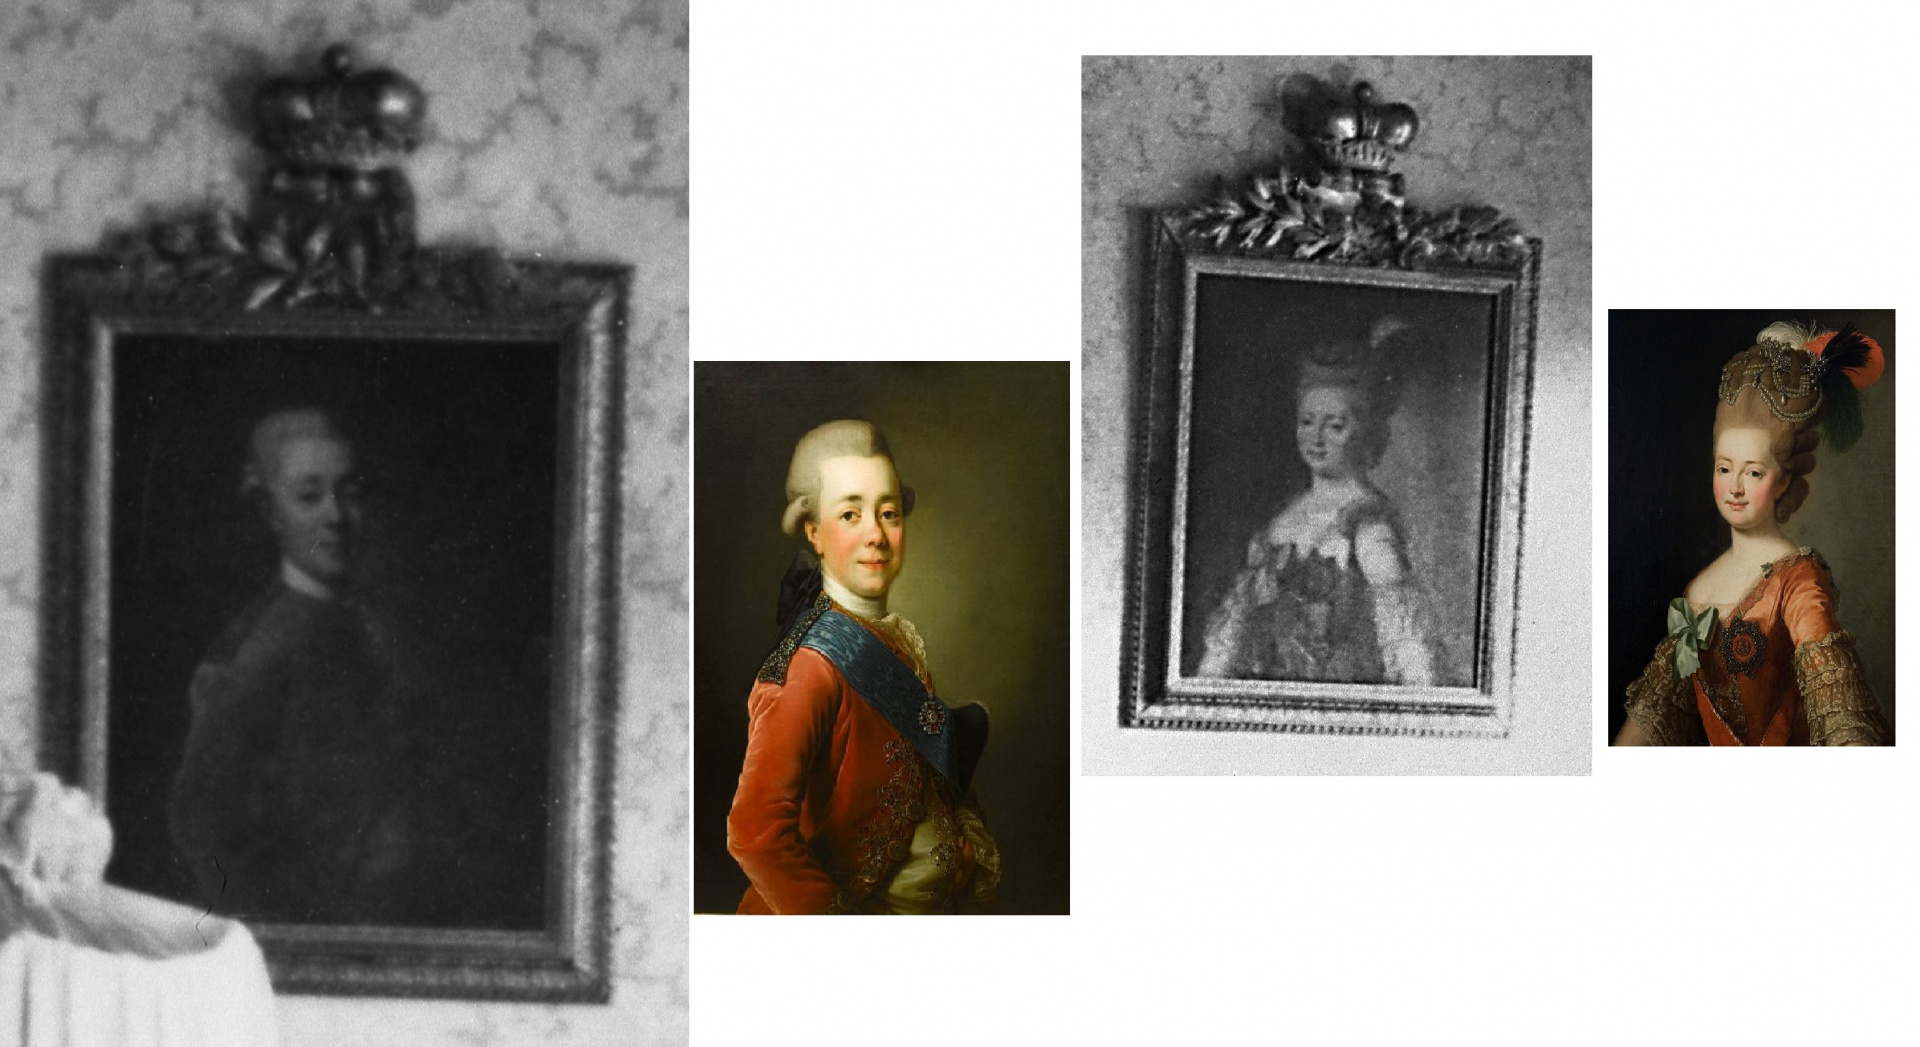 ill 35. The portraits of Emperor Paul I and Empress Maria Fyodorovna were painted after A. Roslin's work.